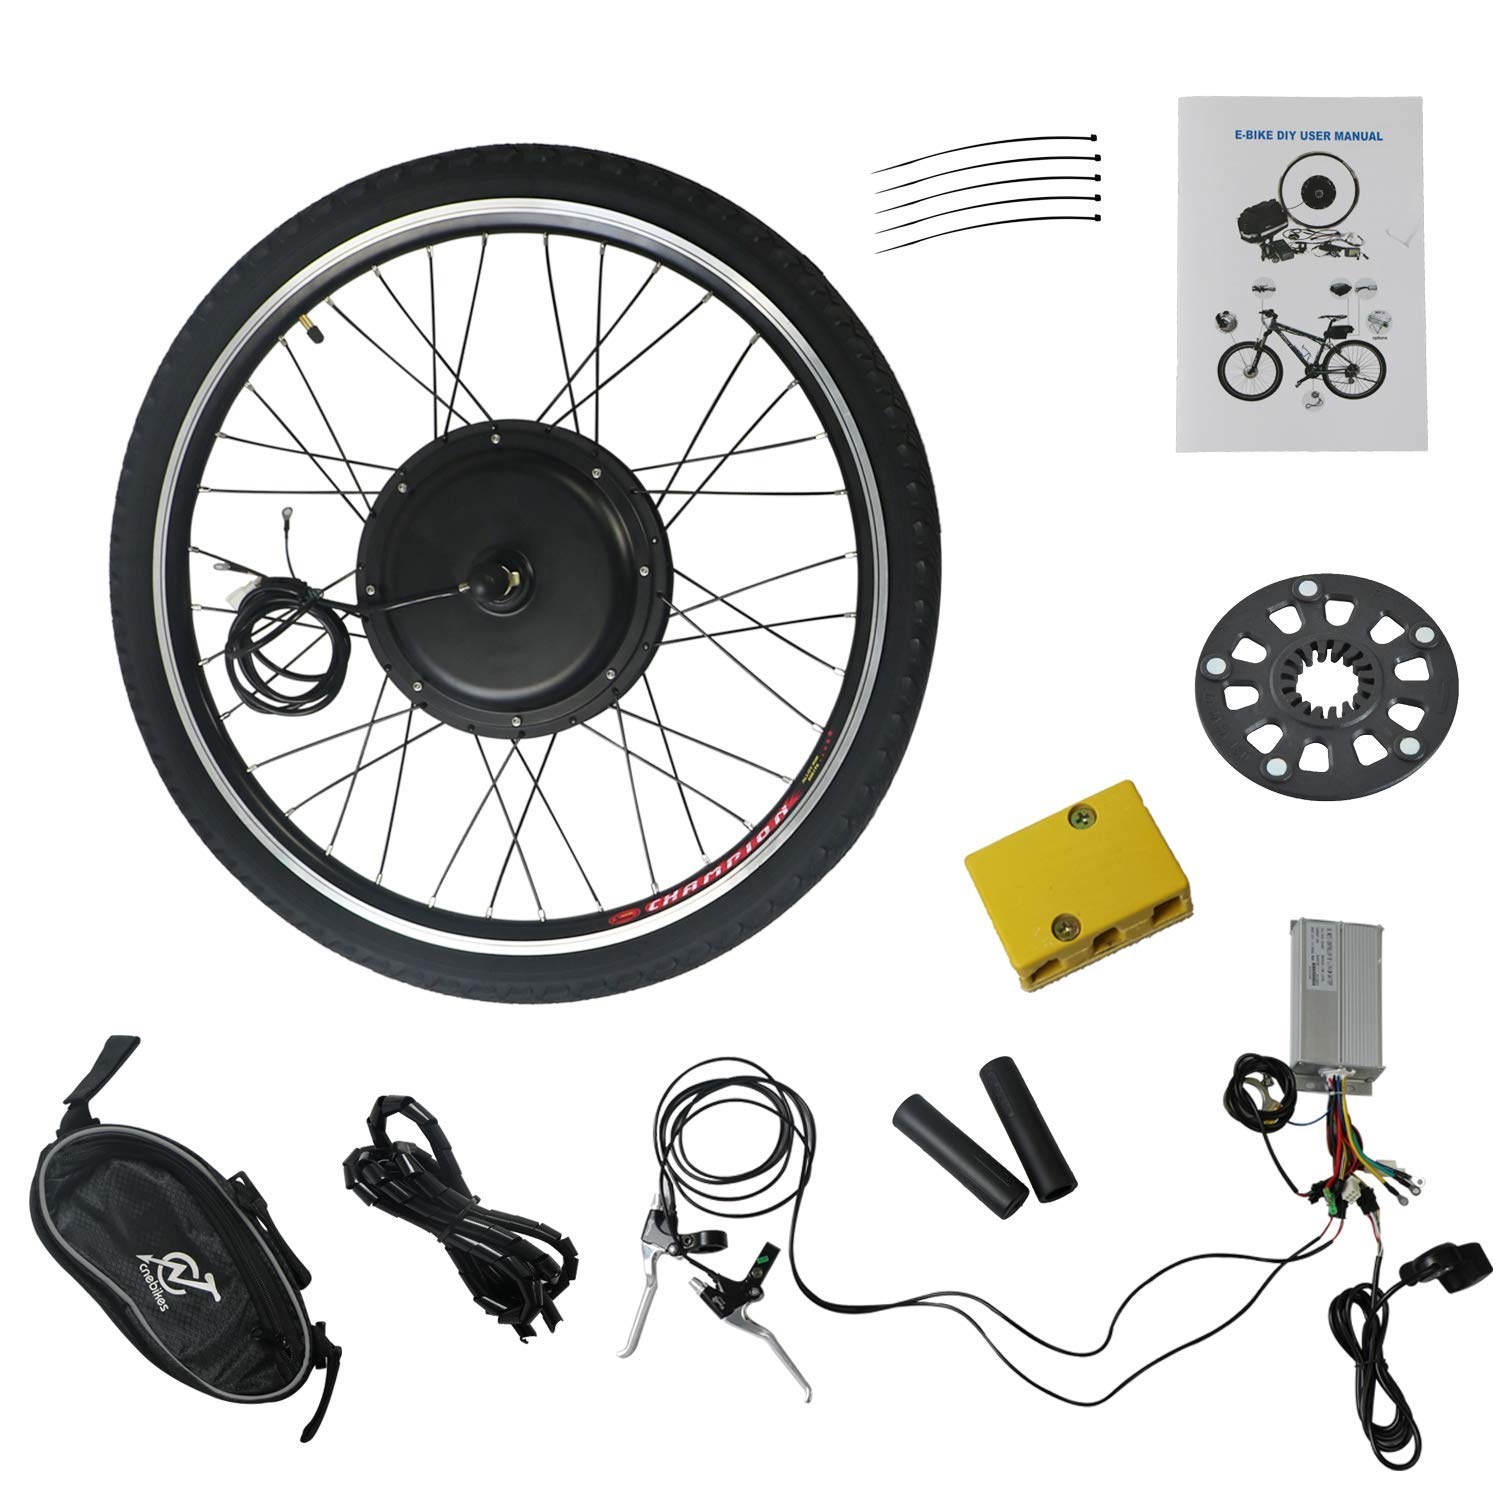 LLY 26'' Electric E-Bike Motor Kit Front Wheel 48V 1000W Battery Powered Bicycle Motor Conversion Kit CA-US Warehouse Drop Ship by LLY